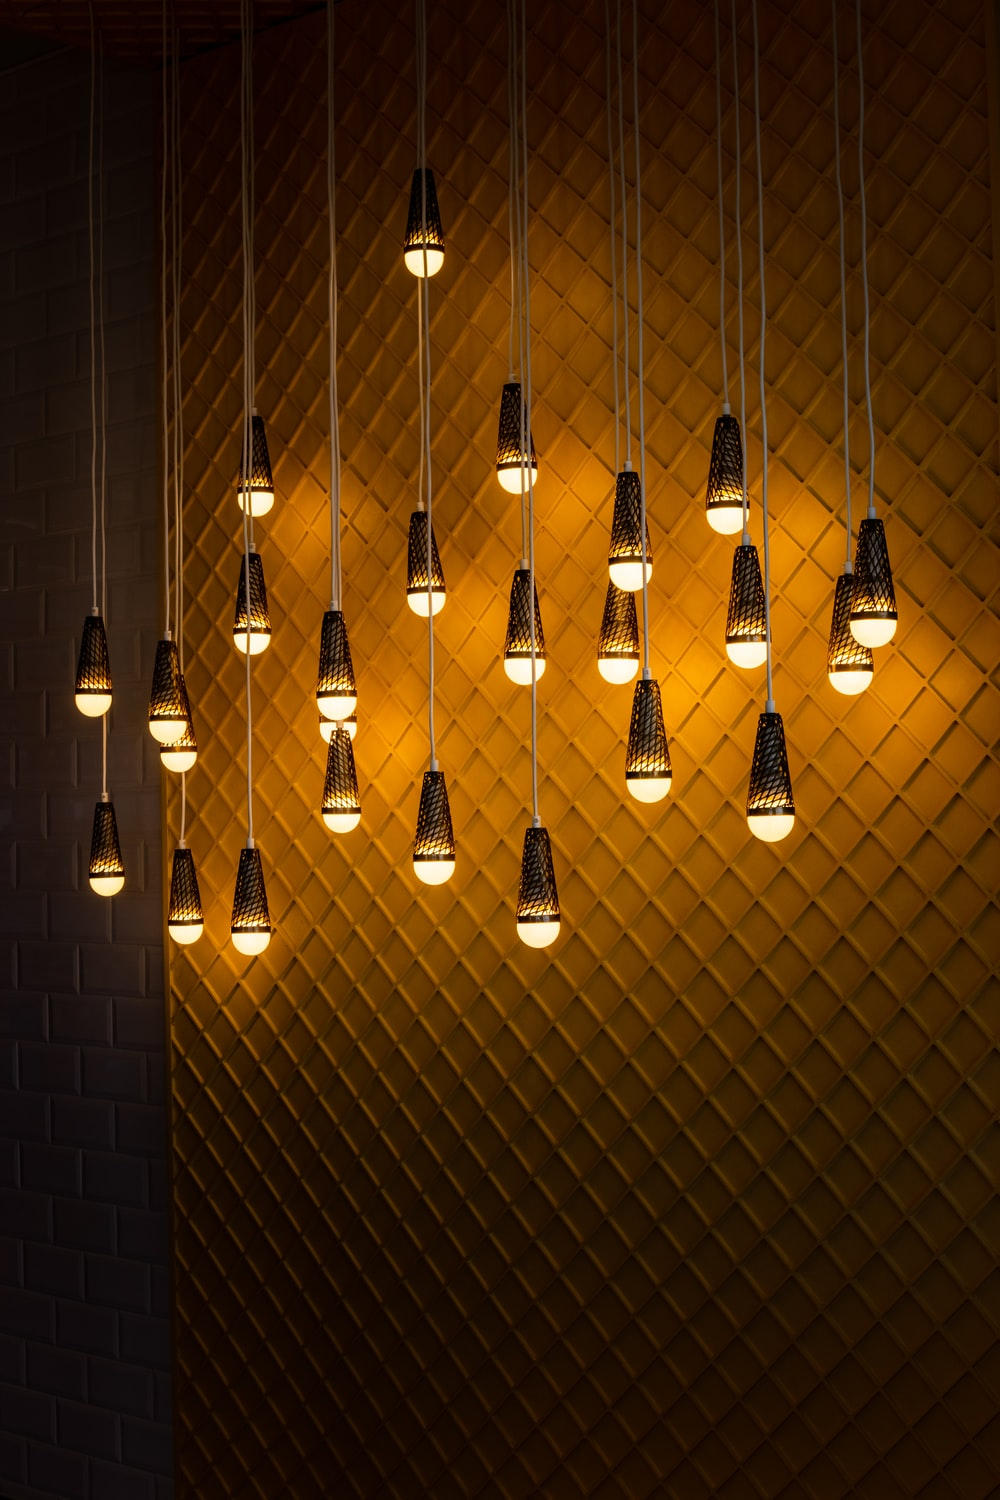 pendant lamps turned on